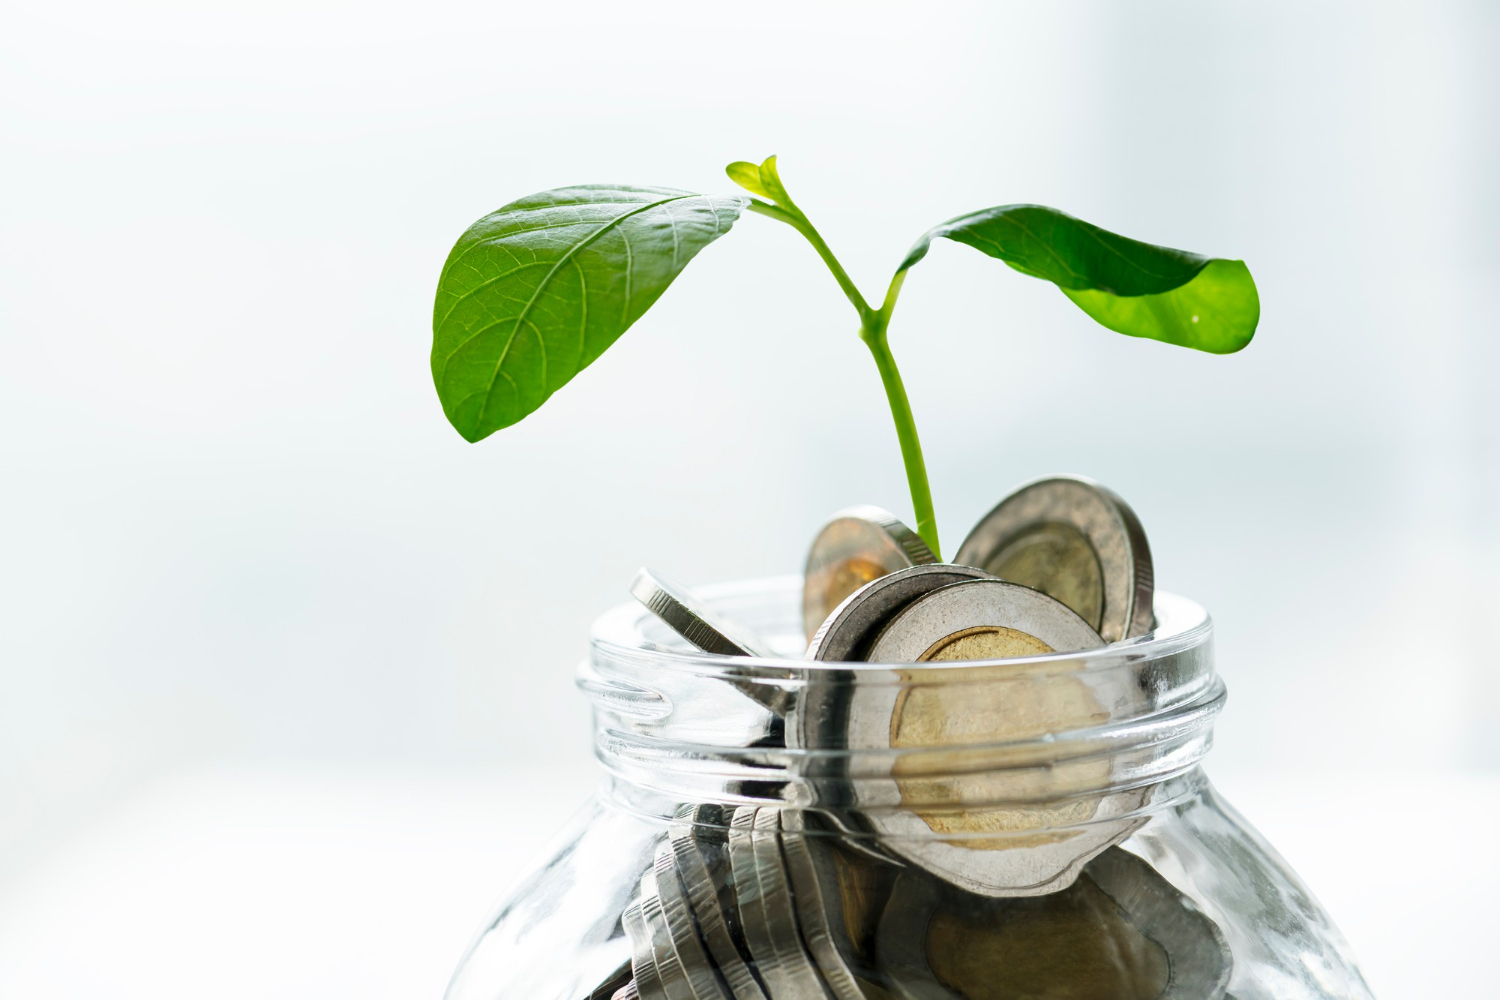 green-economy-jar-with-money-growing-plant